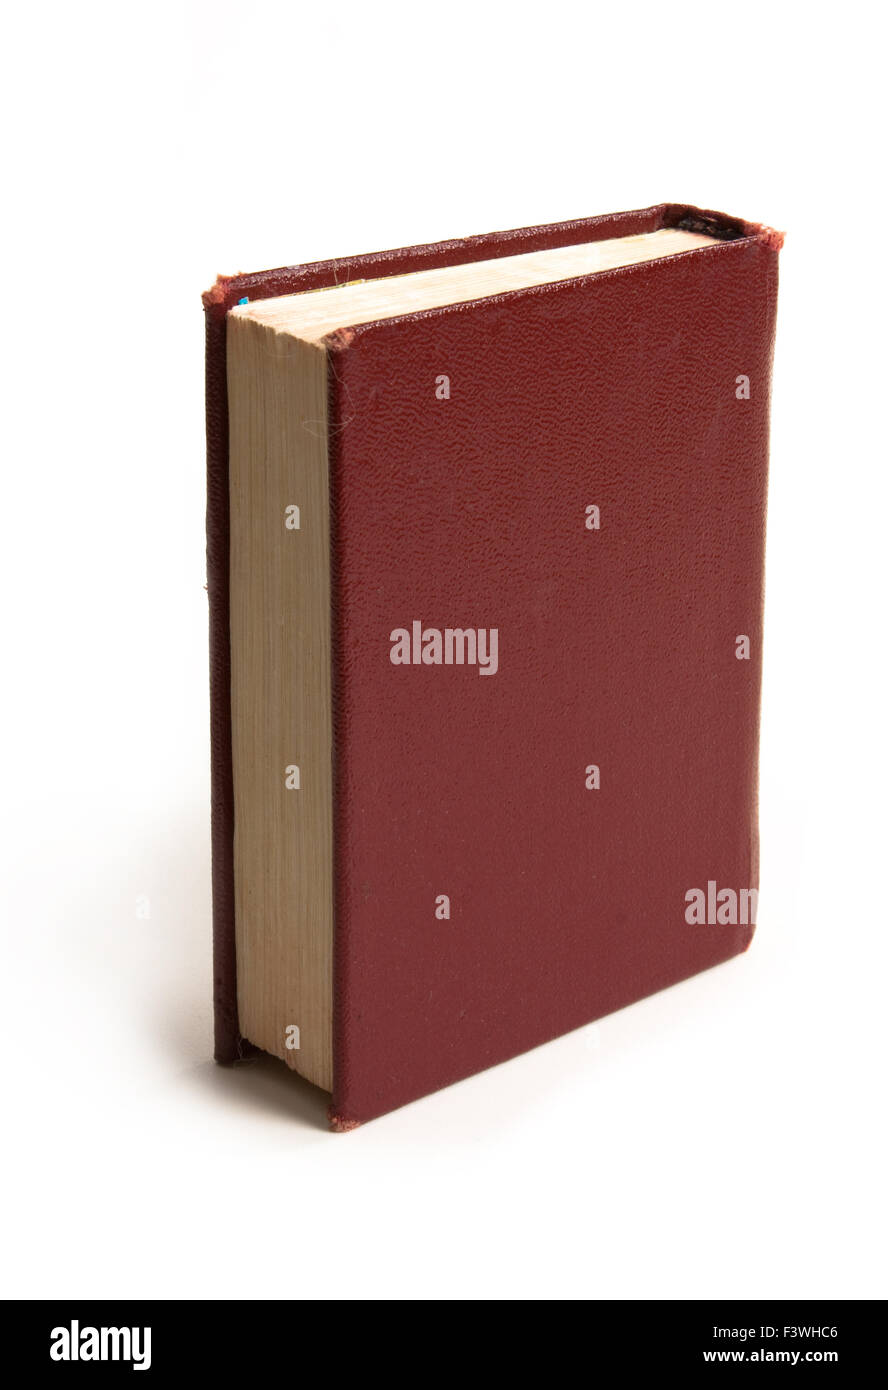 Book - Stock Image